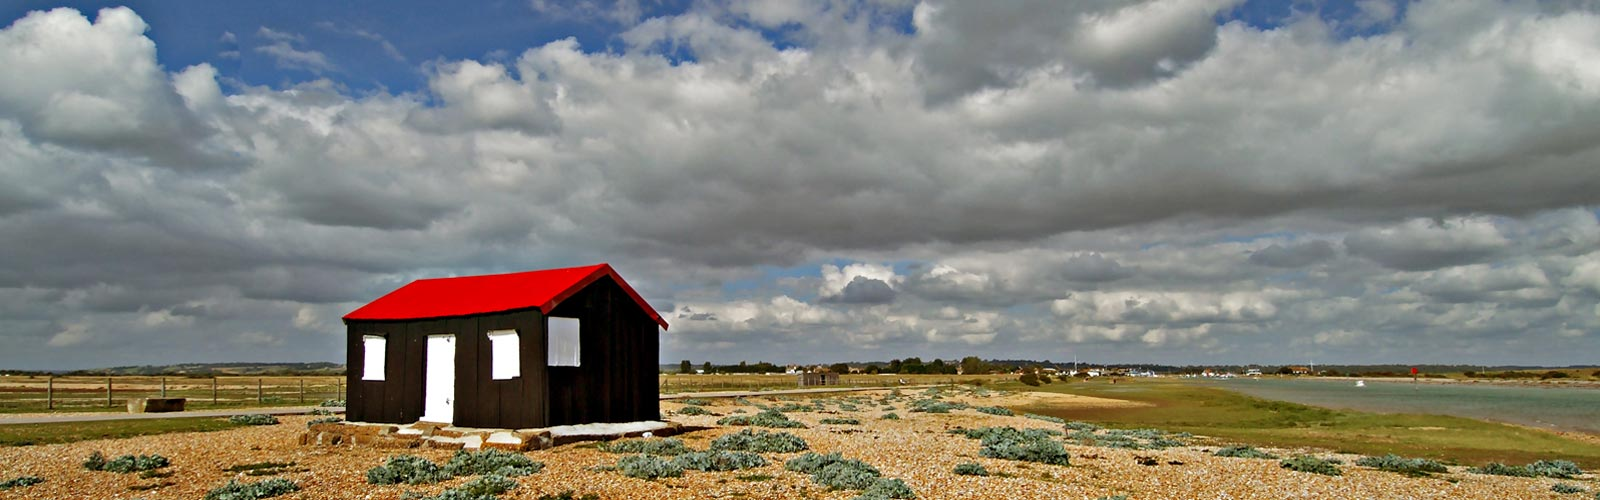 Rye Red Hut by Brian Farey